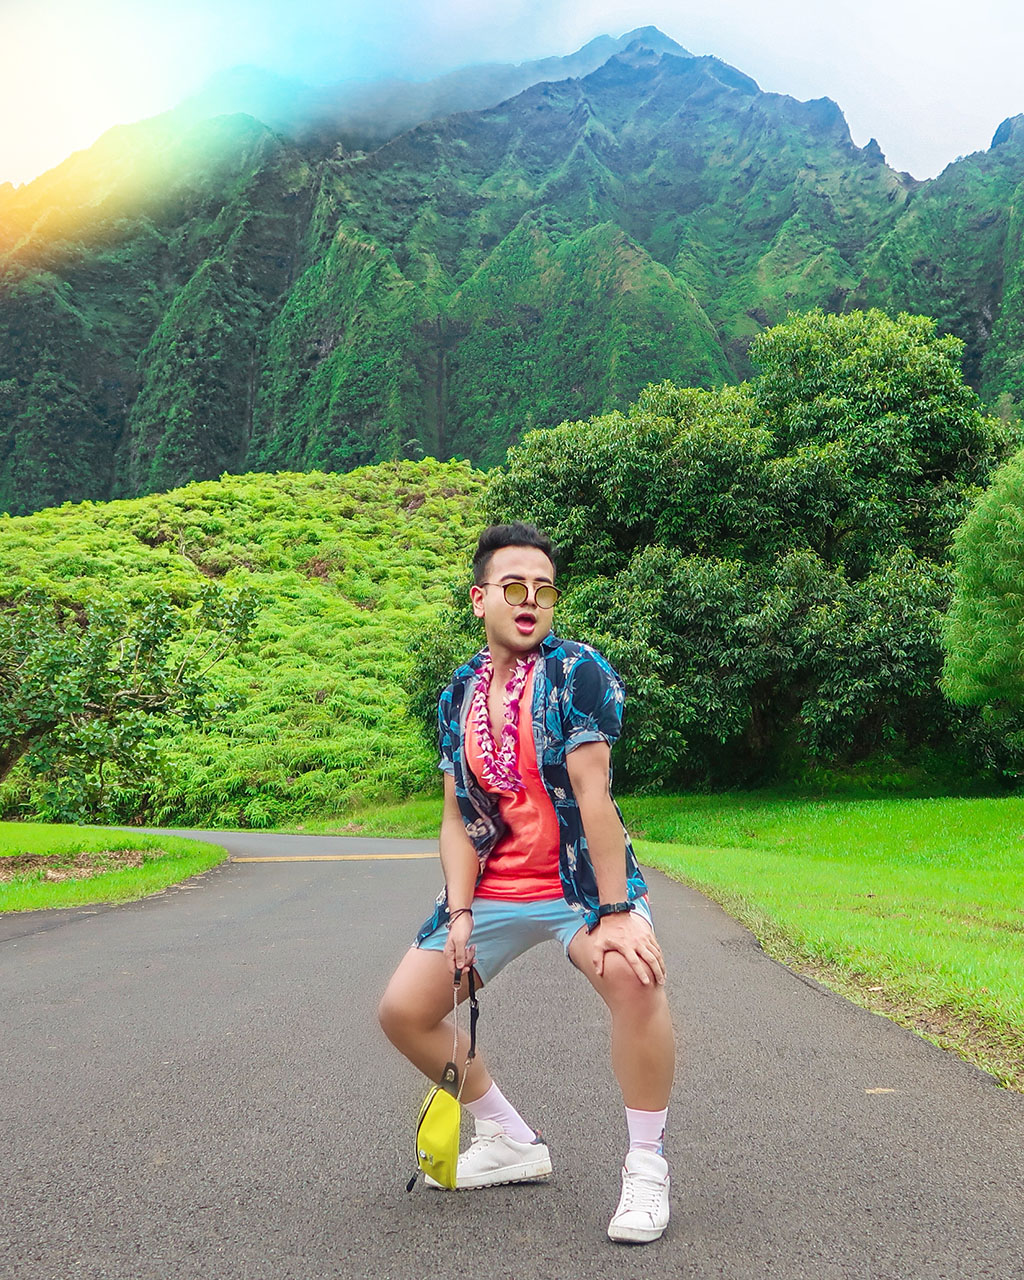 Jonathan Waiching Ho + Social Media Influencer+Travel Influencer+ Fashion Influencer + Vancouver + Toronto +Montreal Canada + Best Fashion Blogs Canada + Top Bloggers Vancouver + Top Influencers Canada + Travel to Hawaii